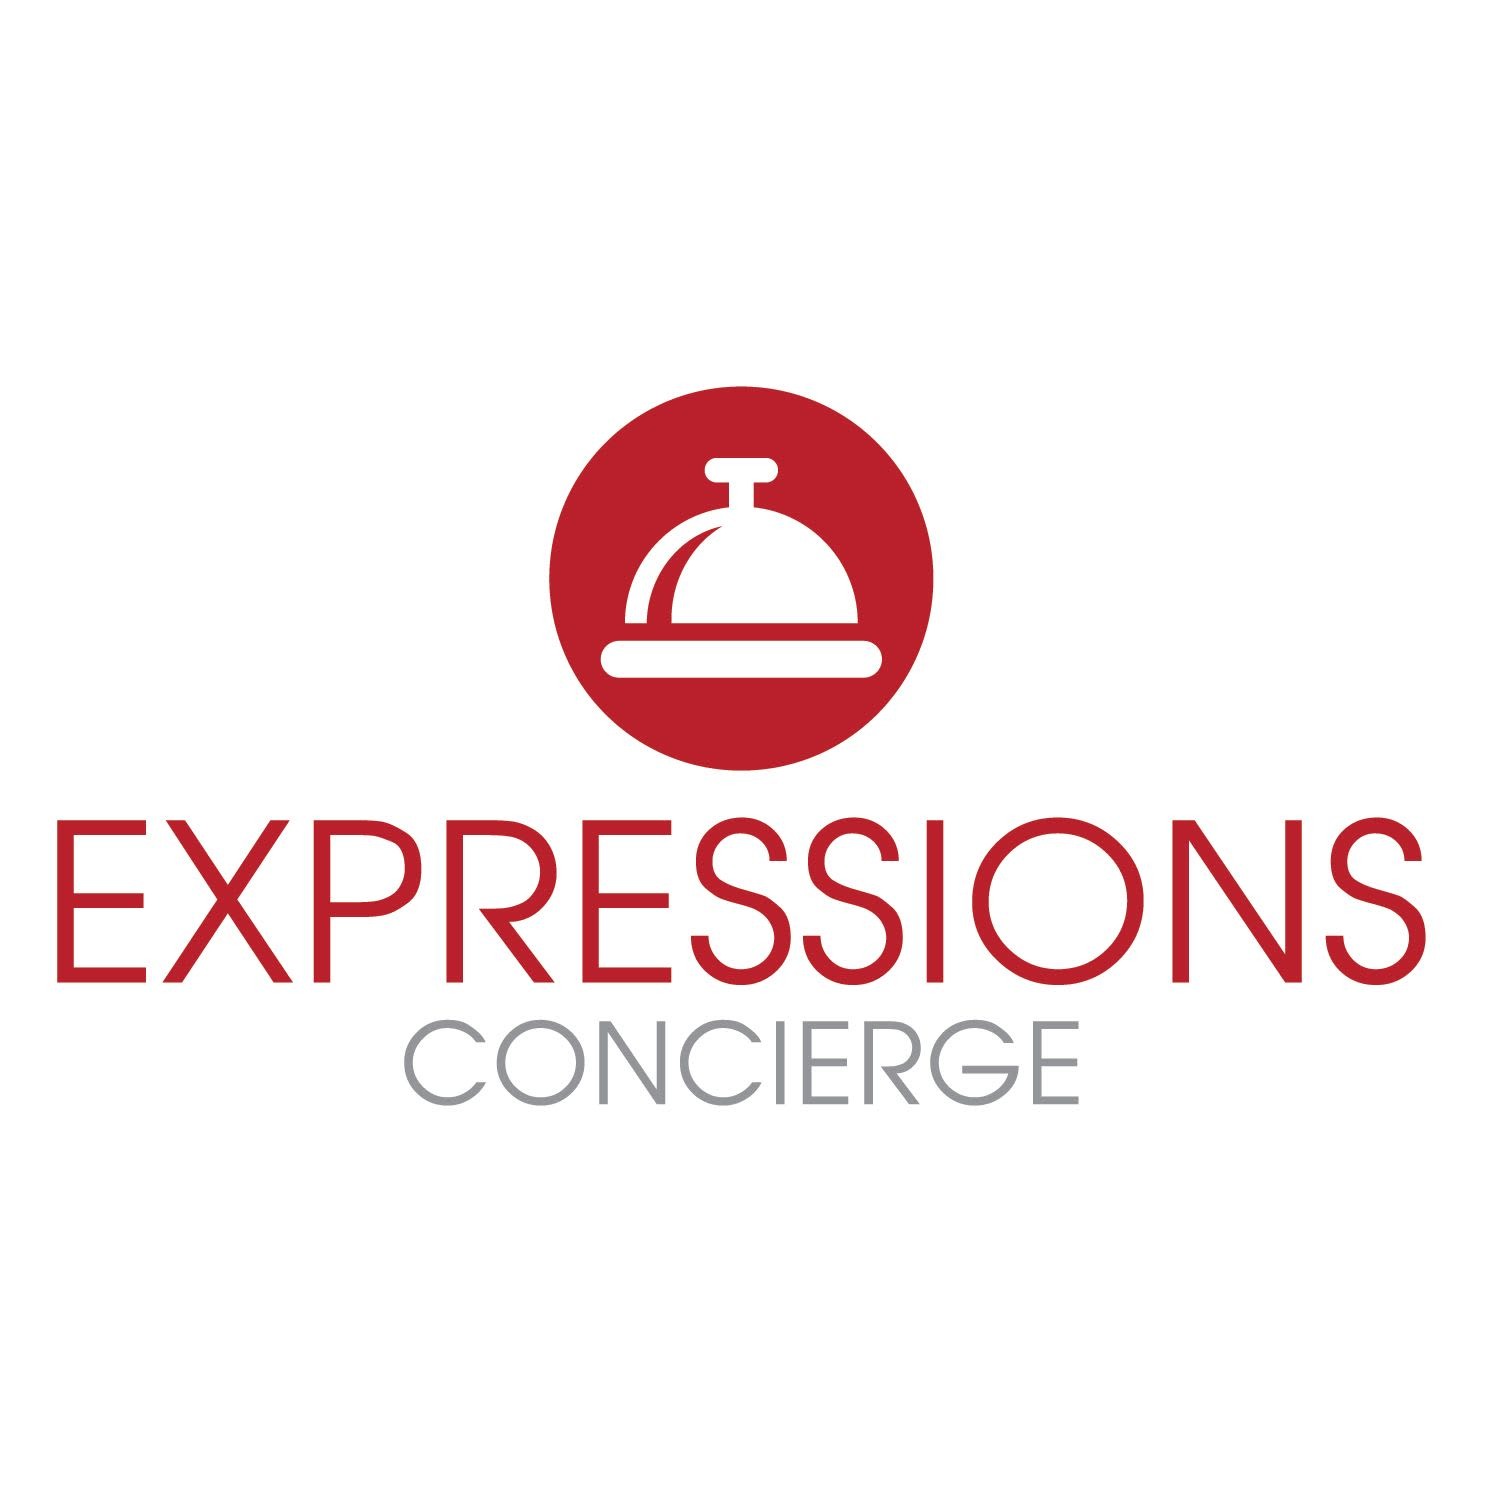 Expressions concierge services at Discovery Village At Southlake in Southlake, Texas